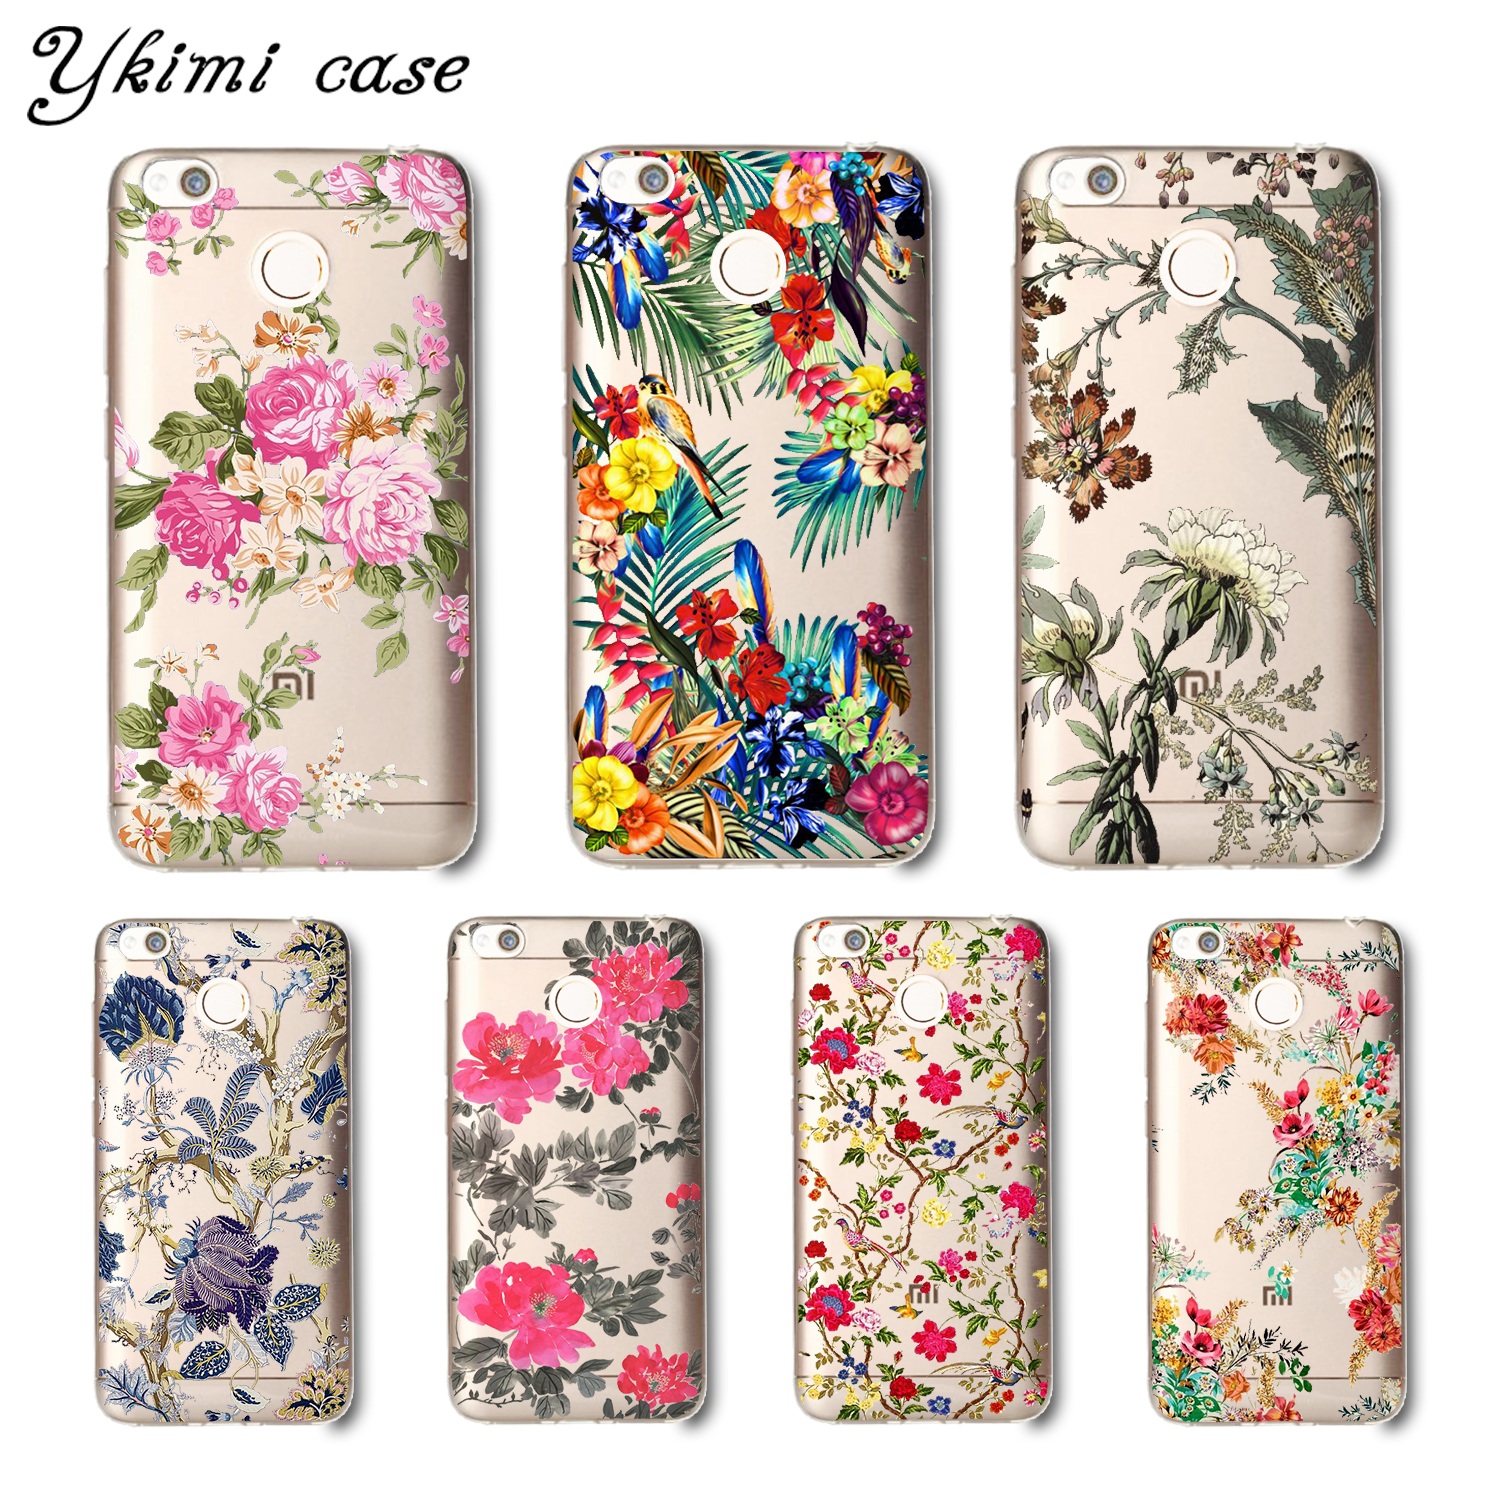 Aliexpress buy fashion transparent soft silicone tpu capa for aliexpress buy fashion transparent soft silicone tpu capa for xiaomi redmi 4x cover case beautiful cartoon flower design phone shell from reliable izmirmasajfo Gallery